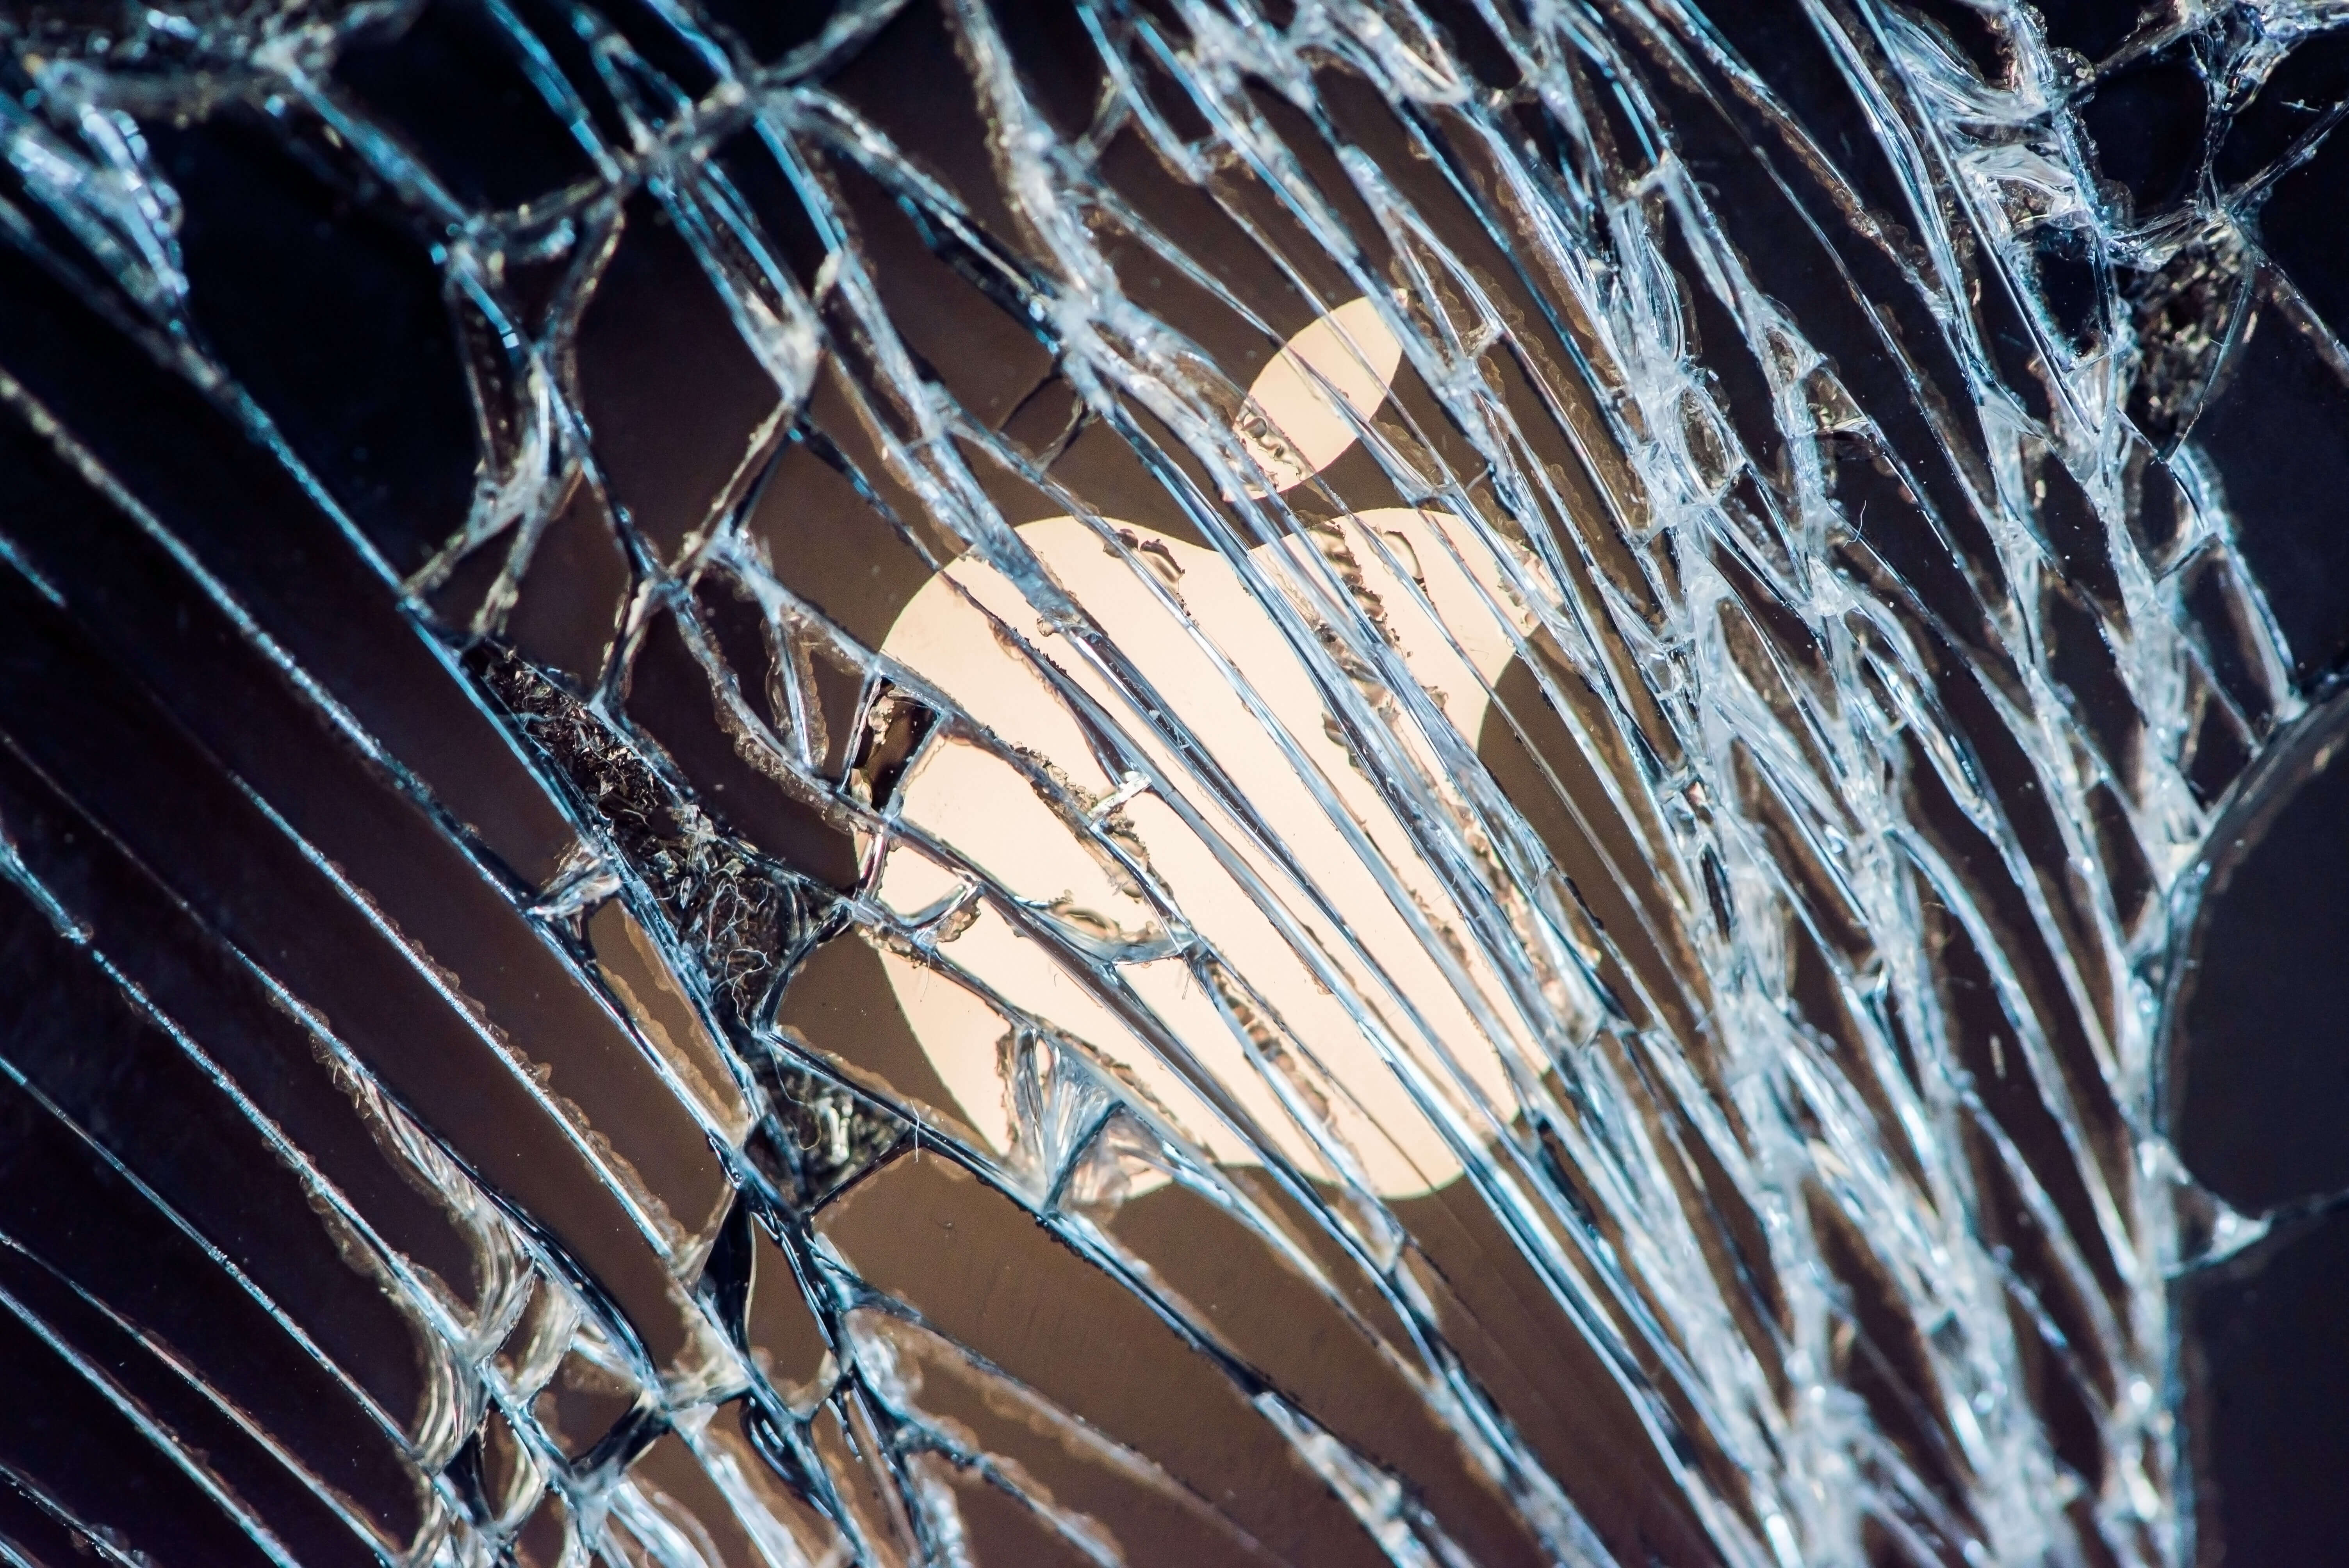 Apple: Verification of third-party iPhone repair stores